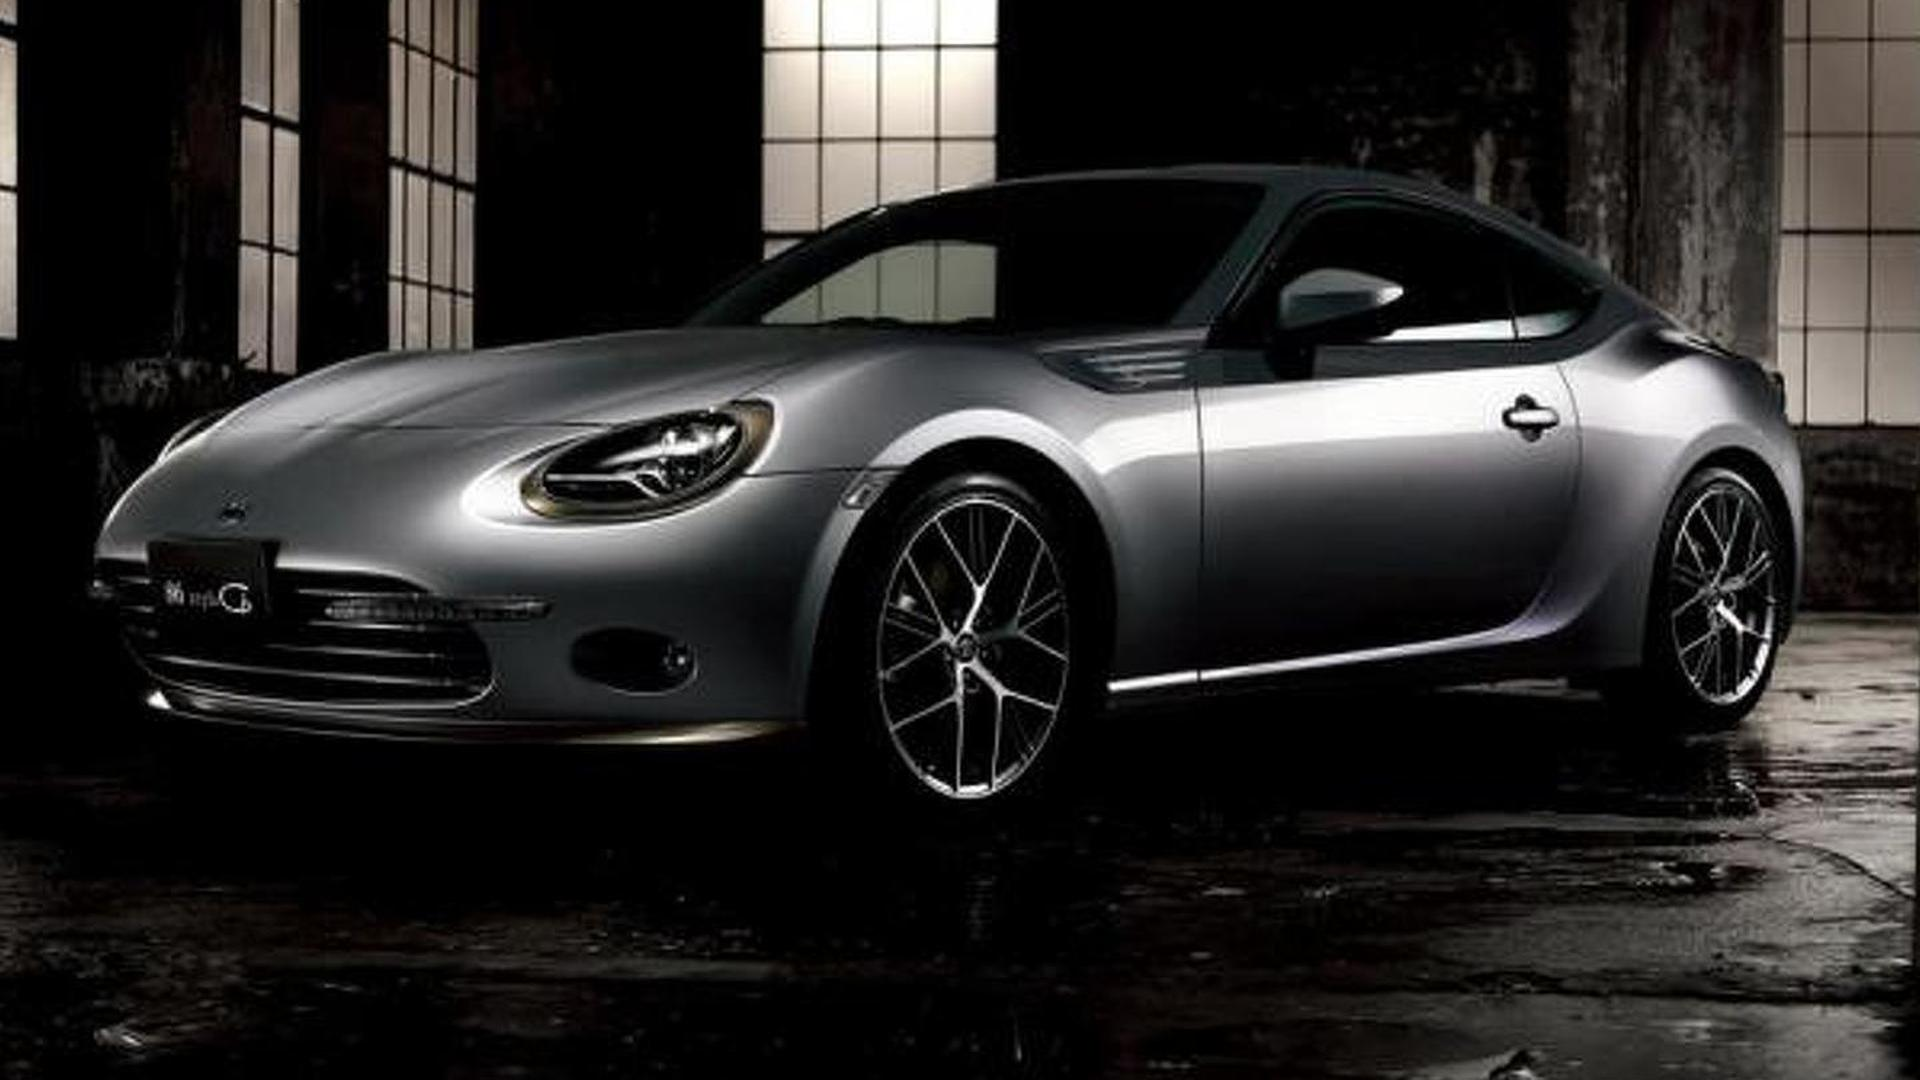 Toyota believed to plan sub GT86 model with 130 bhp and 980 kg weight